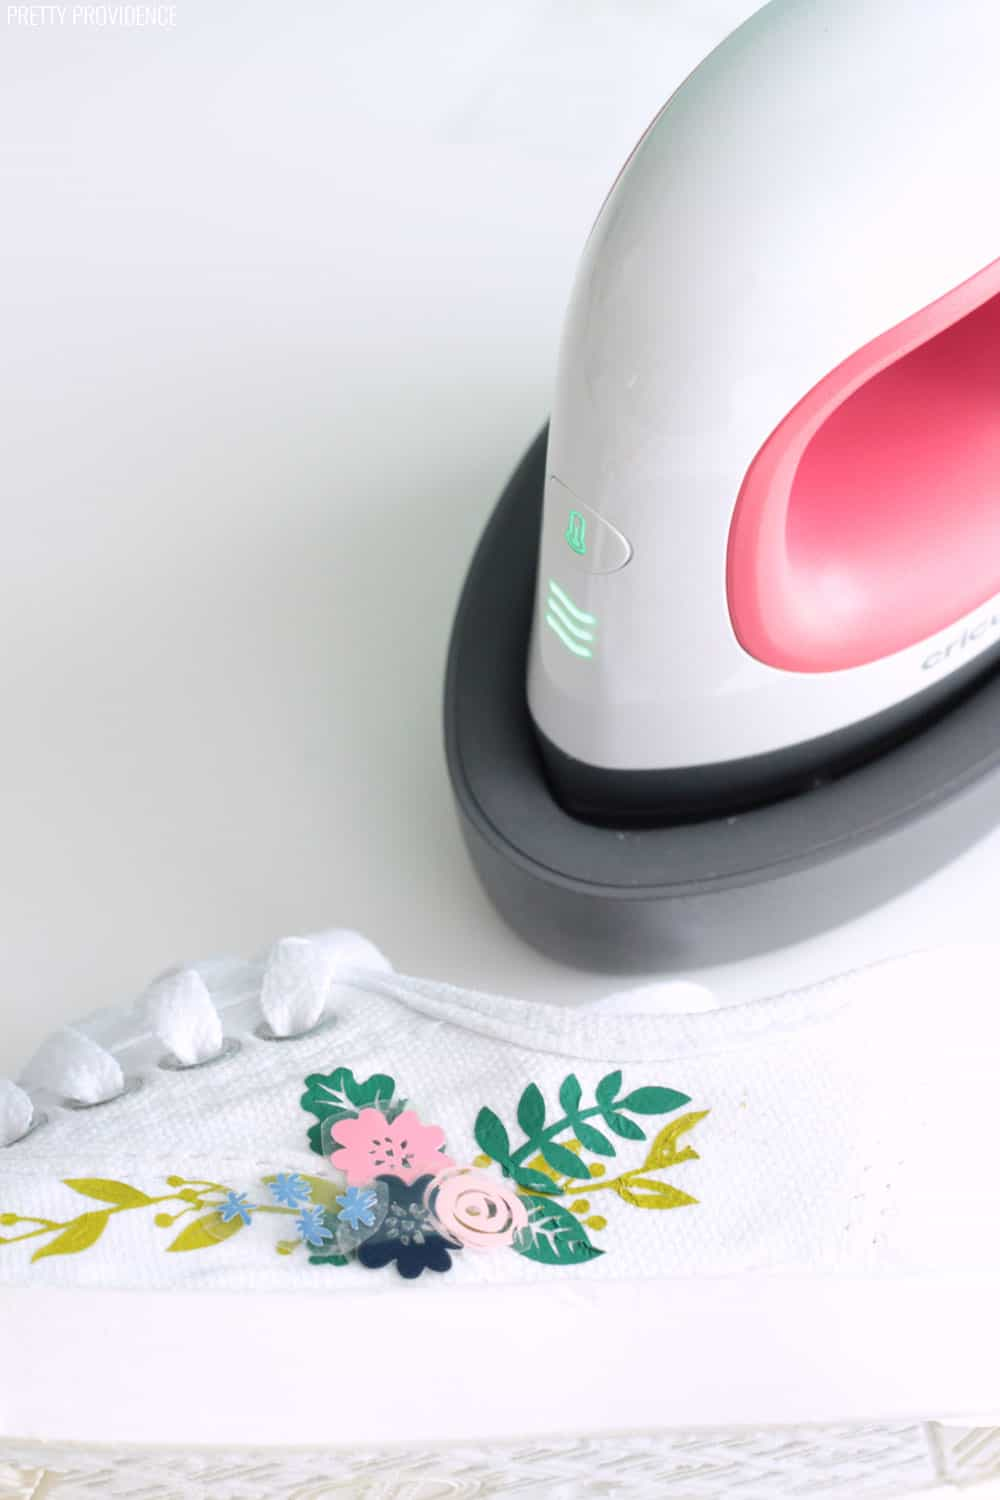 EasyPress Mini (mini craft iron made by Cricut) and a white keds shoe with iron-on vinyl being applied to it.